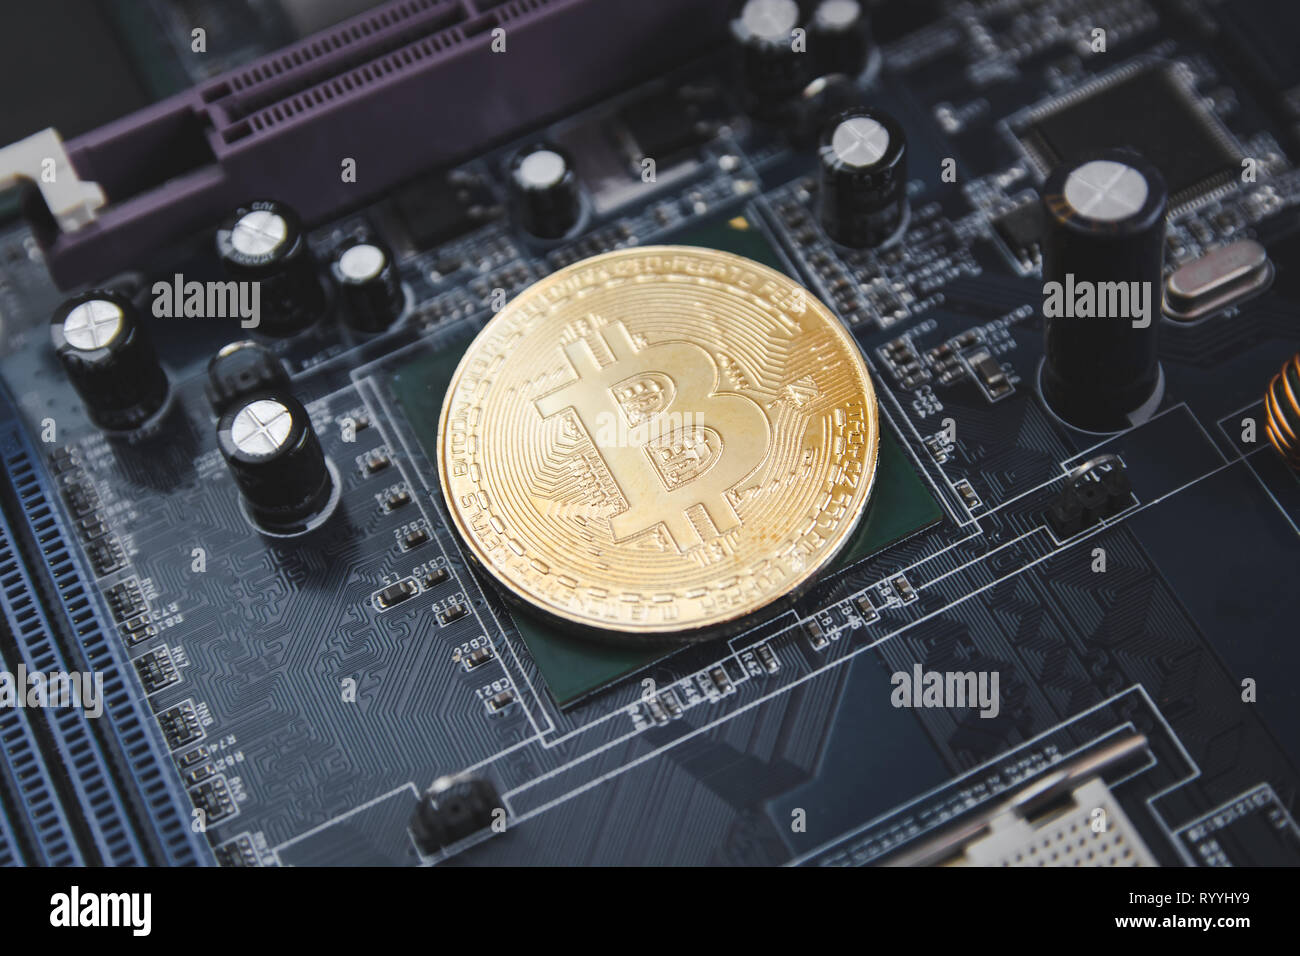 Golden Bitcoin coins on Motherboard, miner with circuit